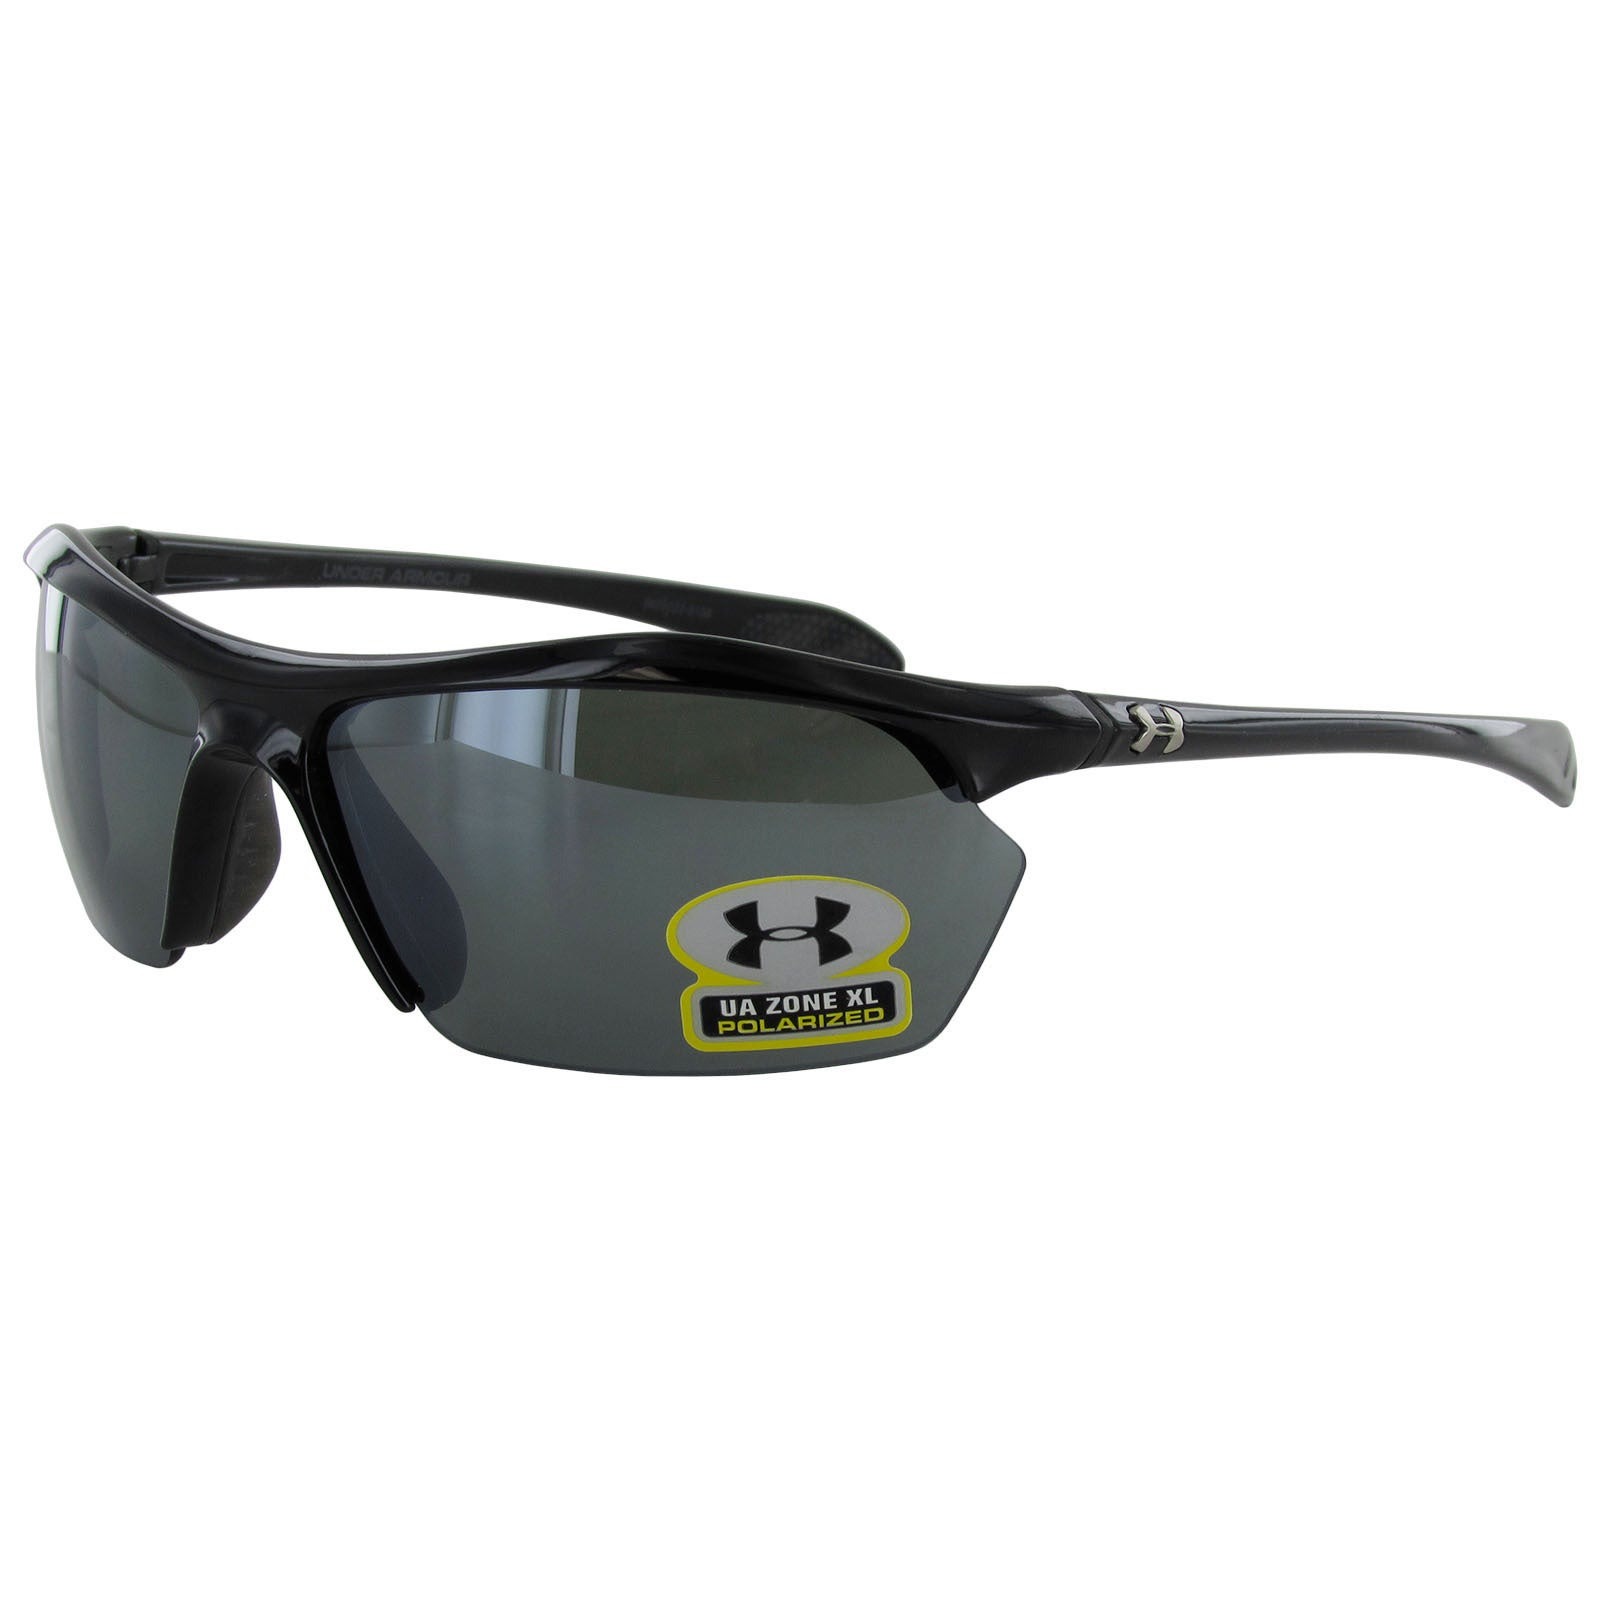 036824a14b Shop Under Armour Mens Zone XL Polarized Sport Wrap Sunglasses - Free  Shipping Today - Overstock - 10266971